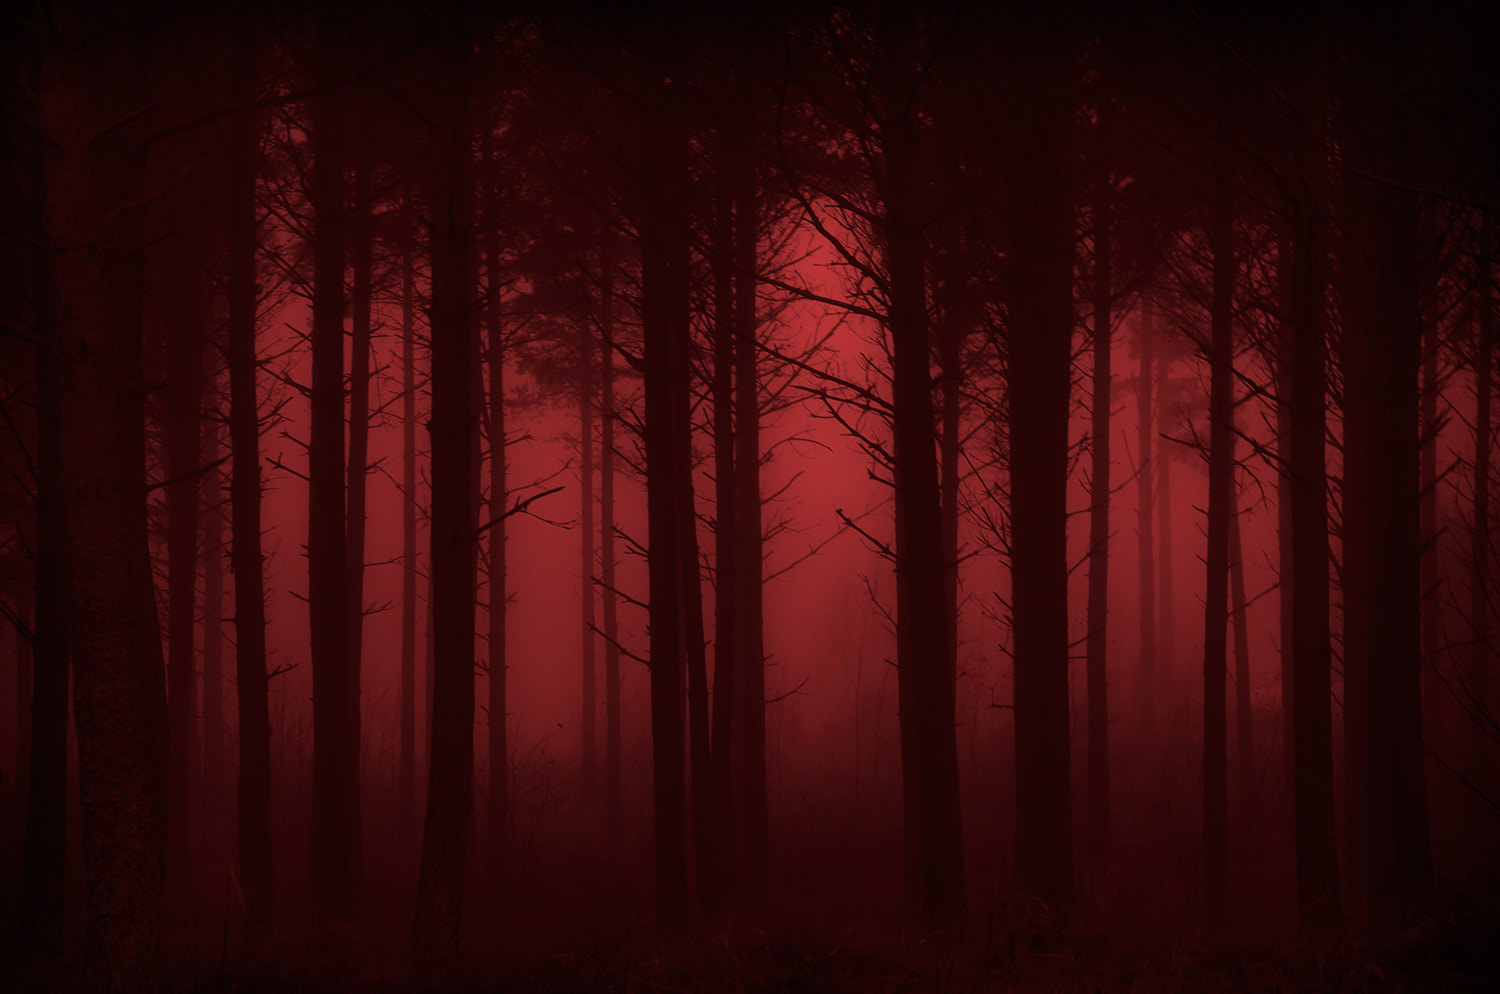 Photograph We'll find the way in red by Ulf Bjolin on 500px